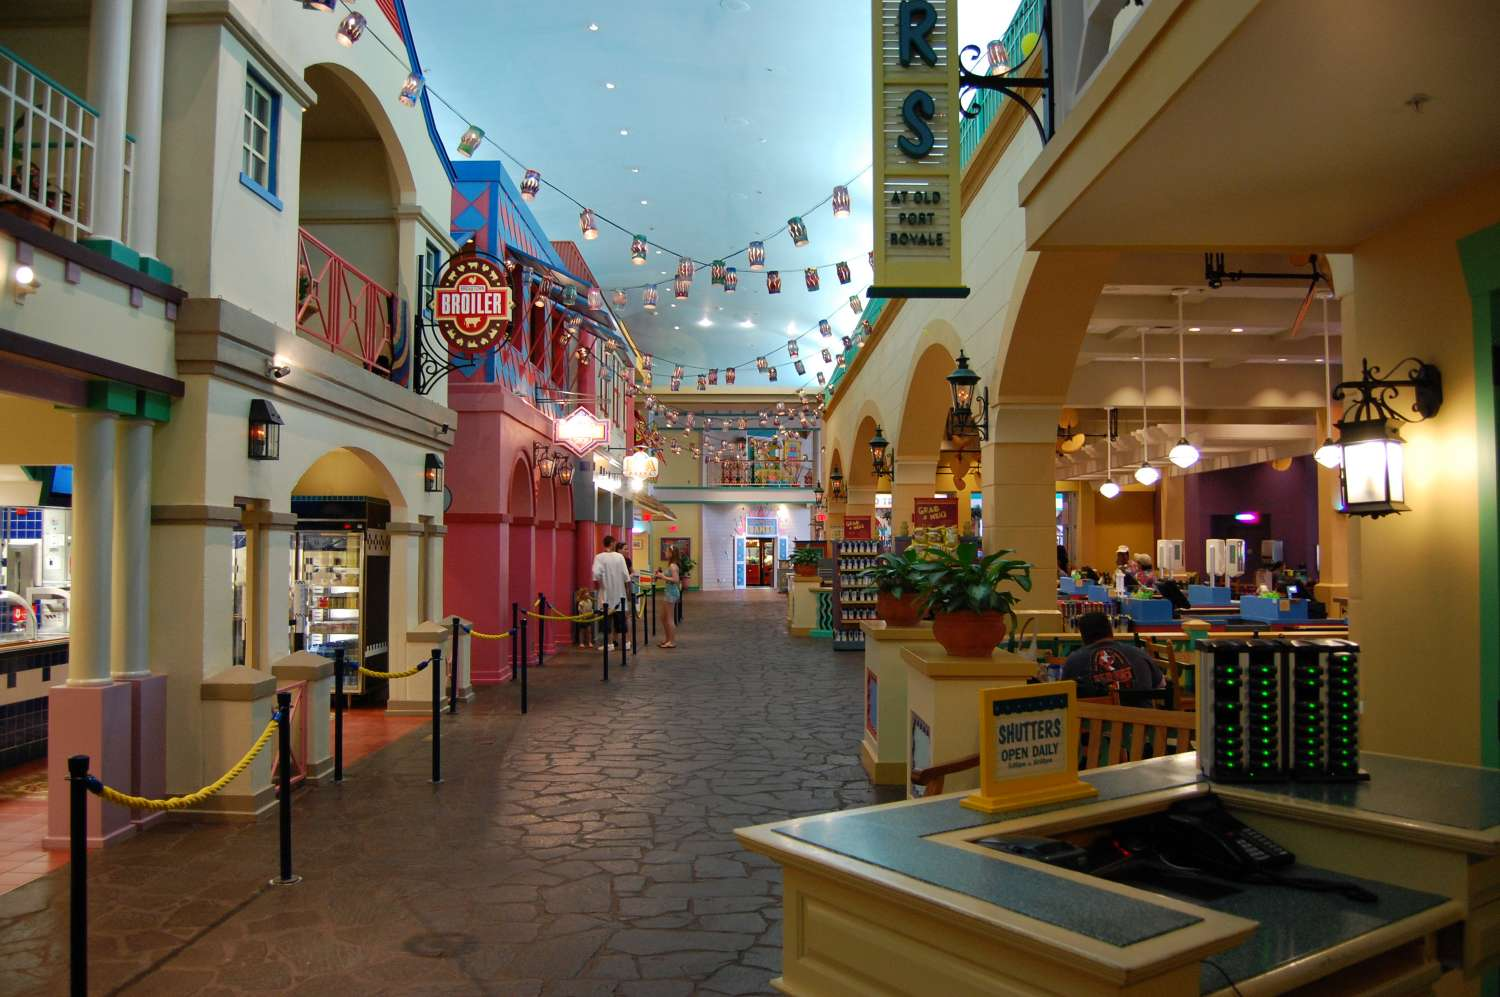 Disney's-Caribbean-Beach-Resort-Shutters-Looking-towards-shops.jpg